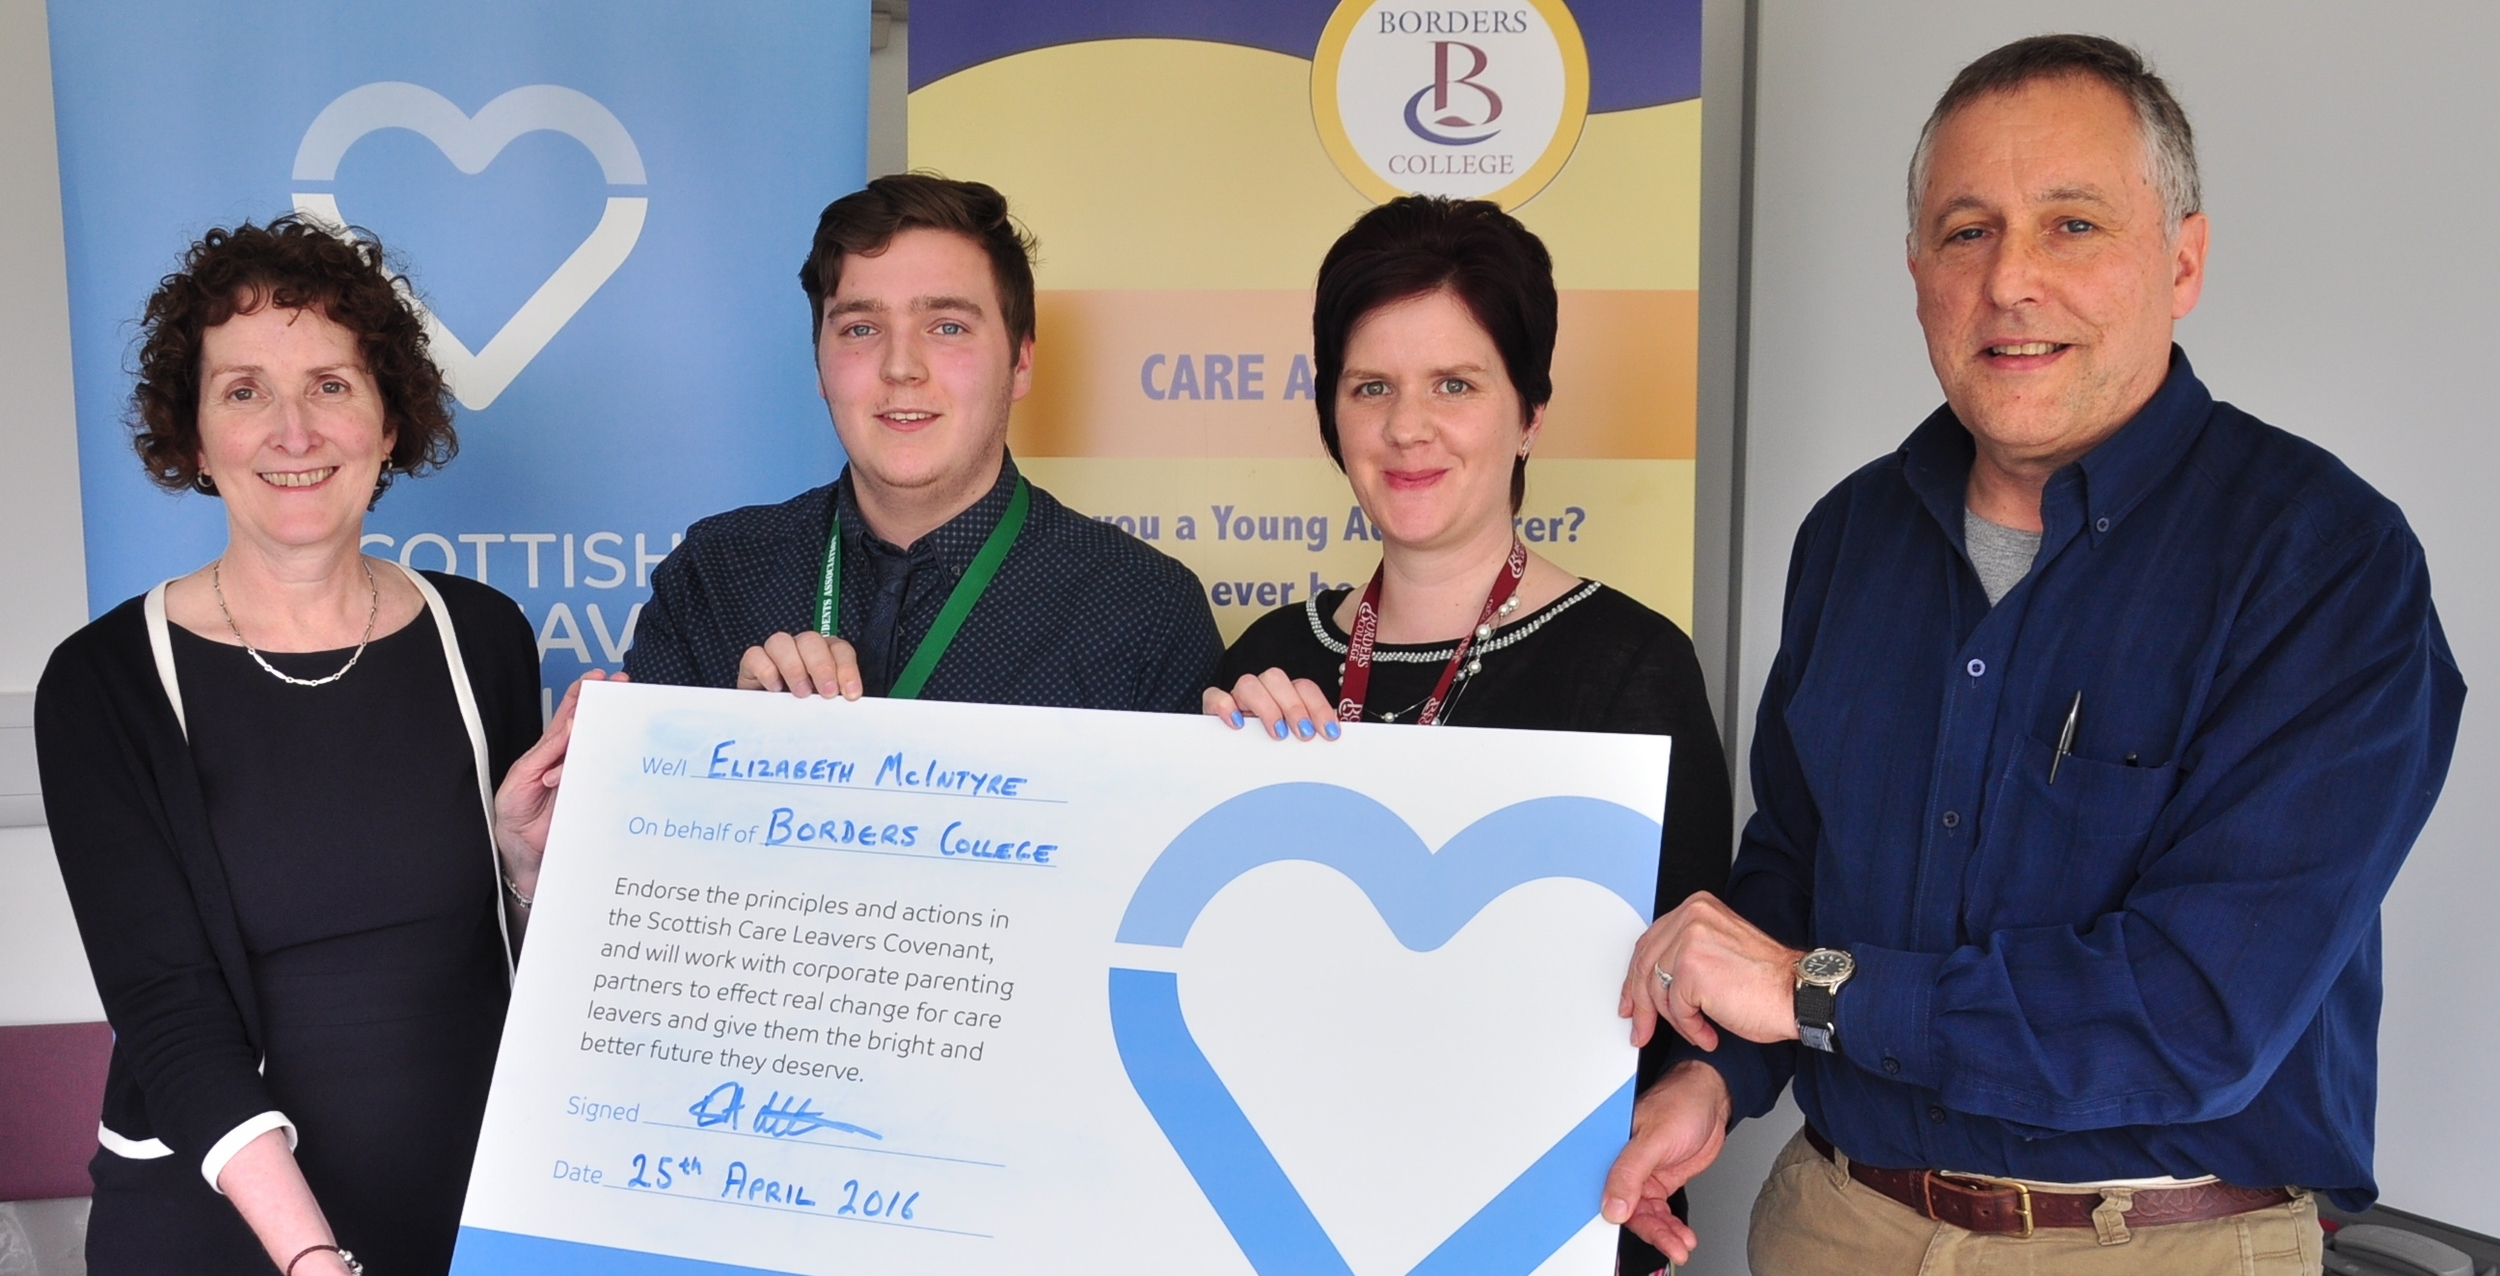 L-R: Liz McIntyre (Borders College Principal), Brian Jamieson (President of Borders College Students Association), Jen MacKenzie (Care Aware Advisor) & Ewan Ross (CELCIS)